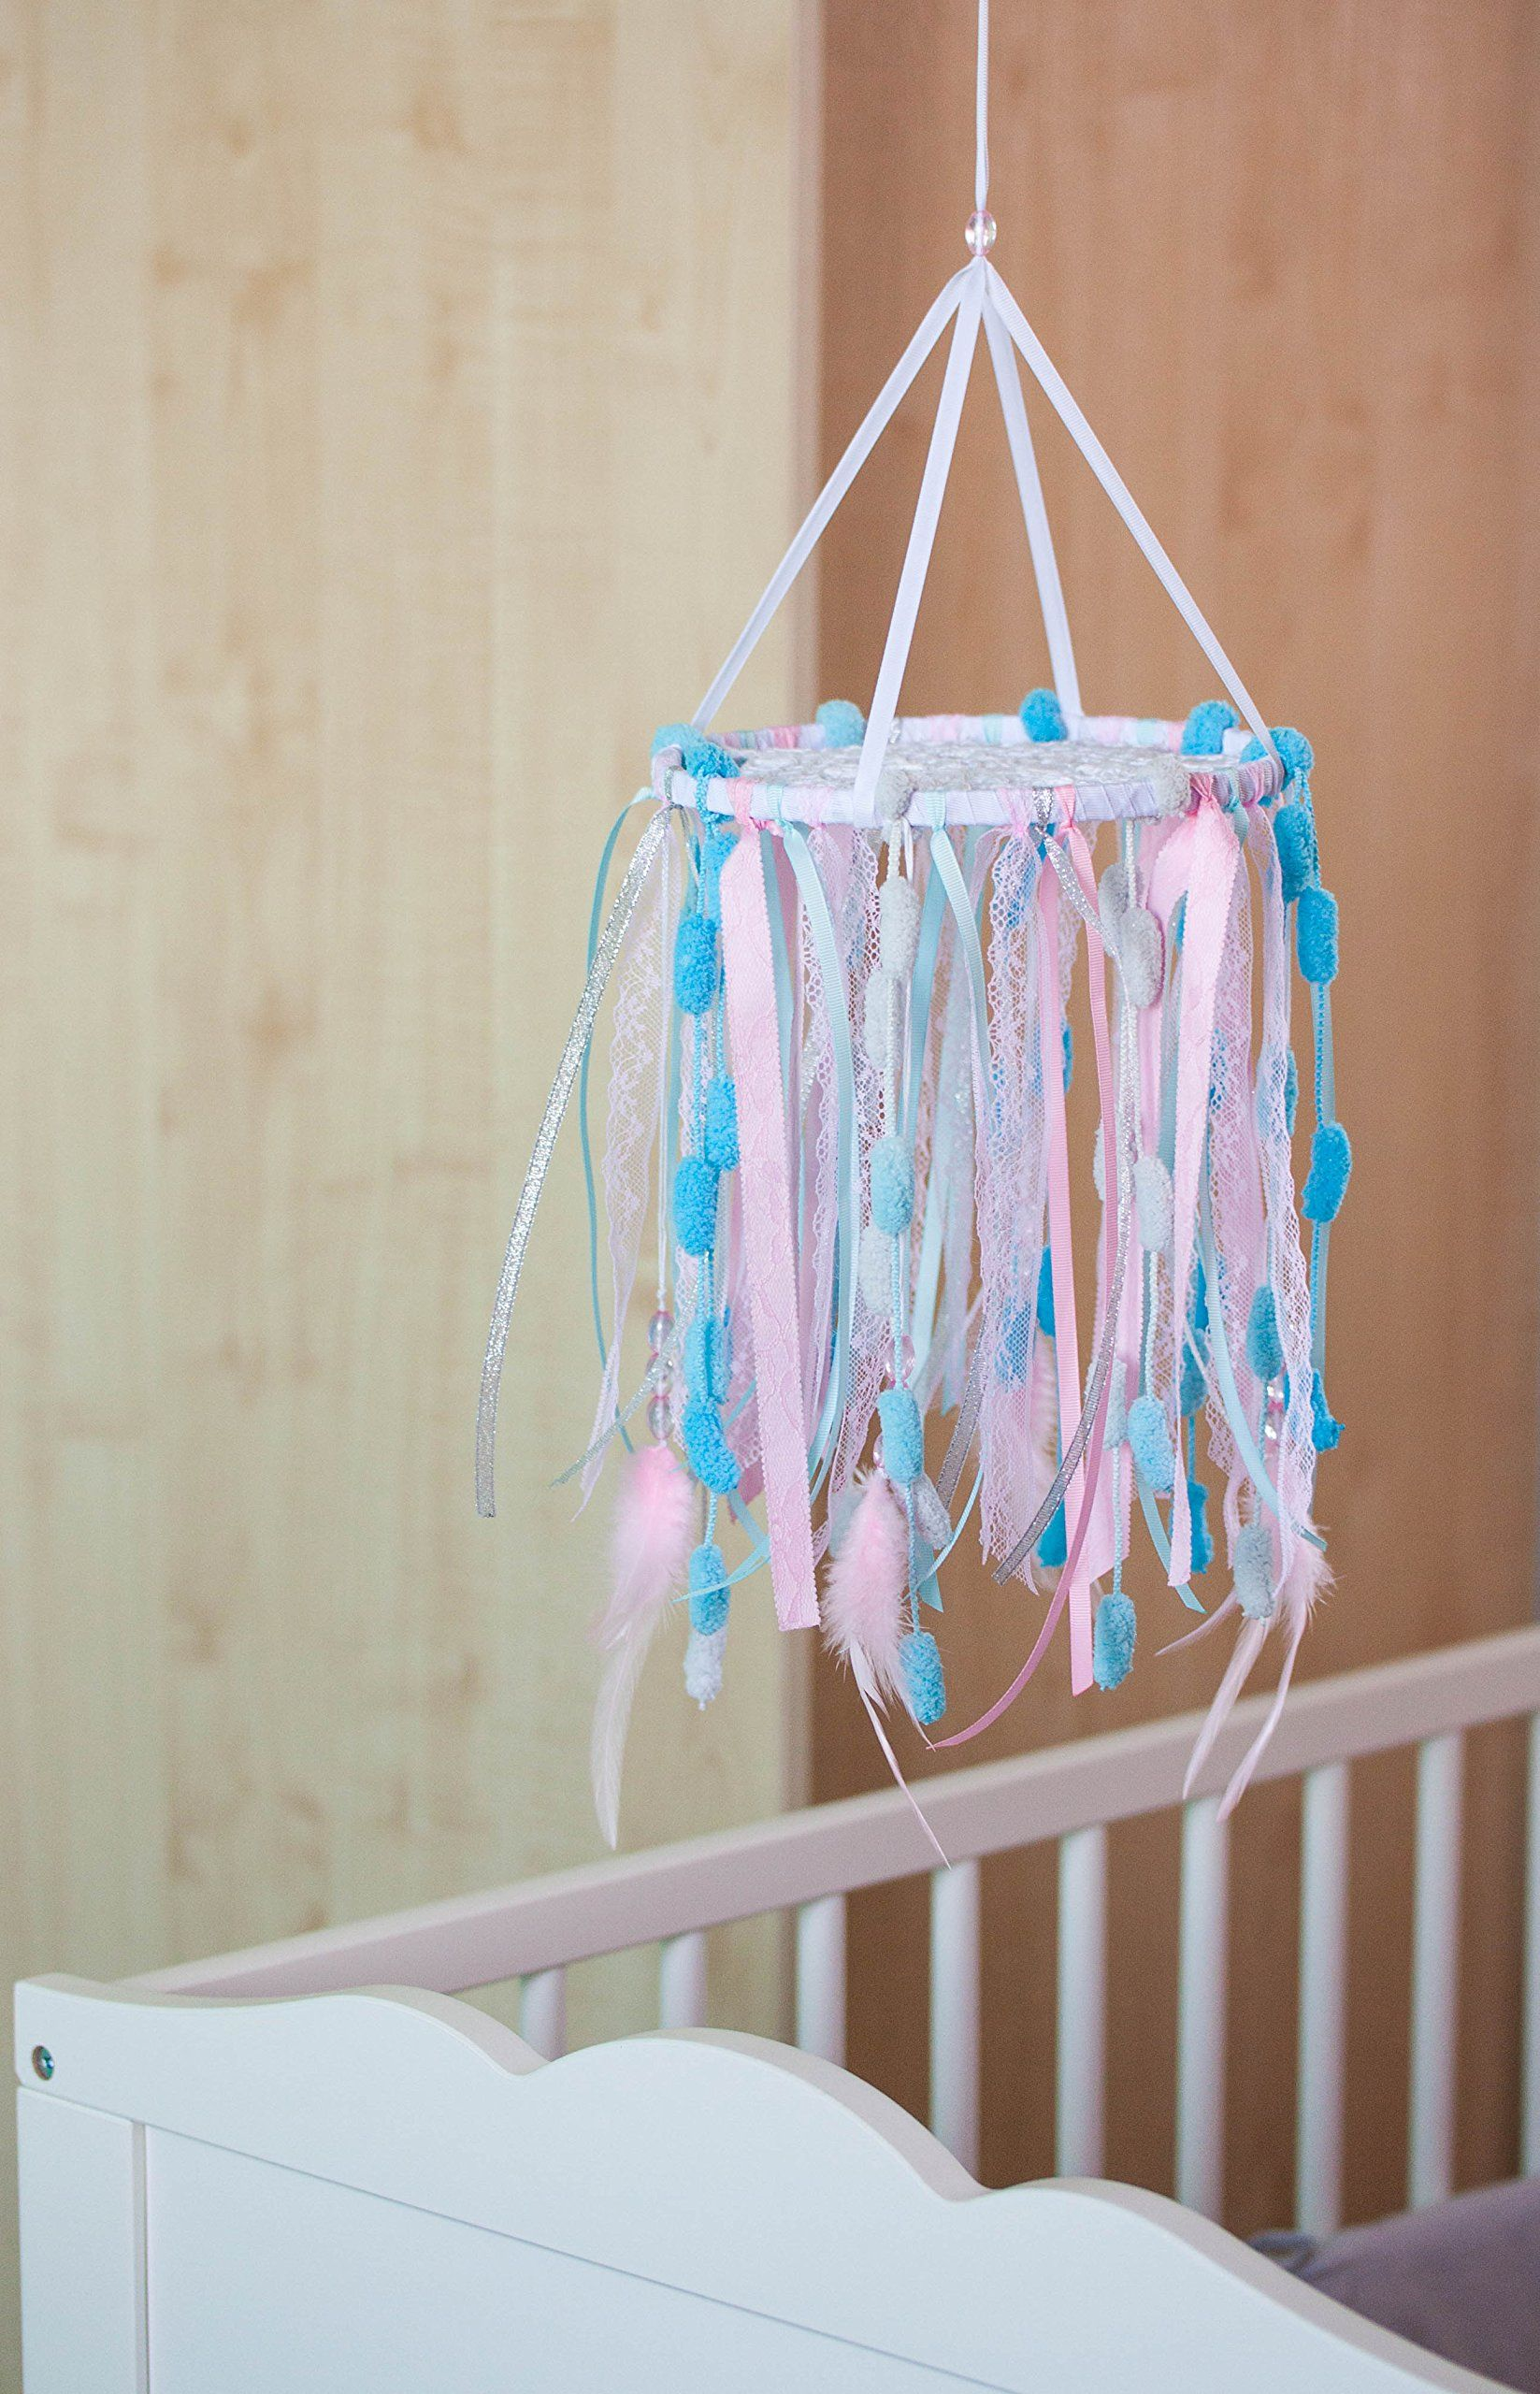 Crib Mobile Dreamcatcher, Baby Nursery Dream Catcher 8`/20 cm , Girls Nursery Dreamcatcher Mobile, Nursery Decor Pink Sky Blue Baby Room Decor, Baby Shower gift. This dreamcatcher crib mobile made as crochet doily on wooden hoop with hanging lace, ribbons and fibres, feathers, beads Colors - white, sky blue, pink and siver Diameter - 8 inches (20 cm) Height - about 12 inches (30 cm).